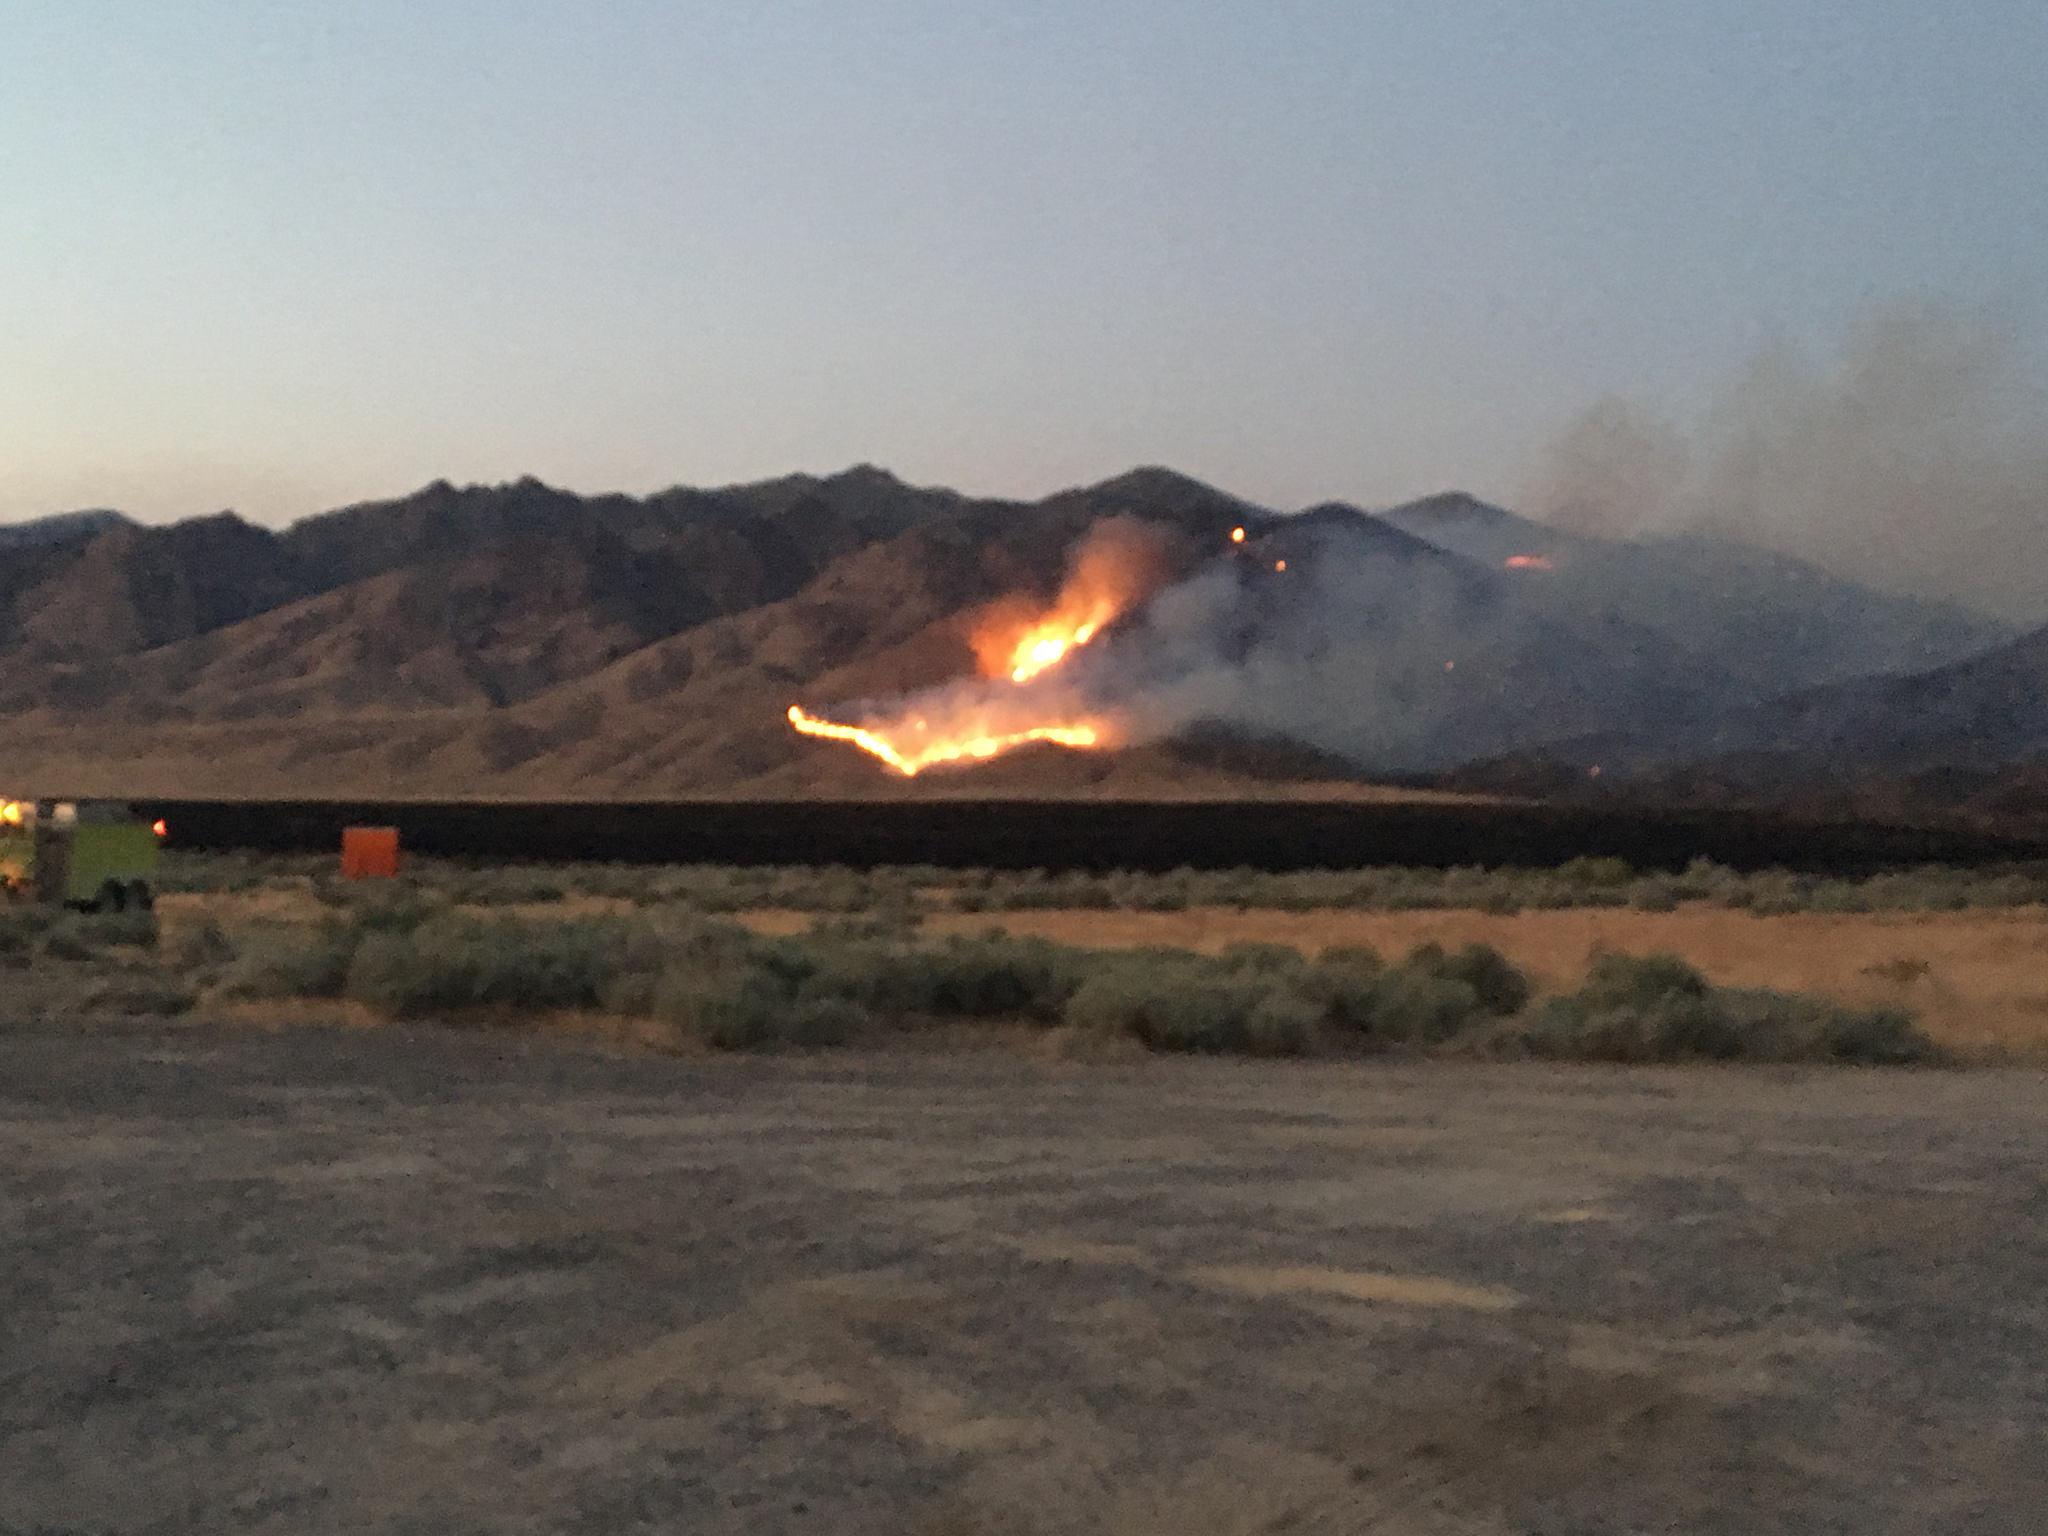 limerick-fire-that-started-july-3-2017-15-miles-northeast-of-lovelock-nevada_35785507395_o